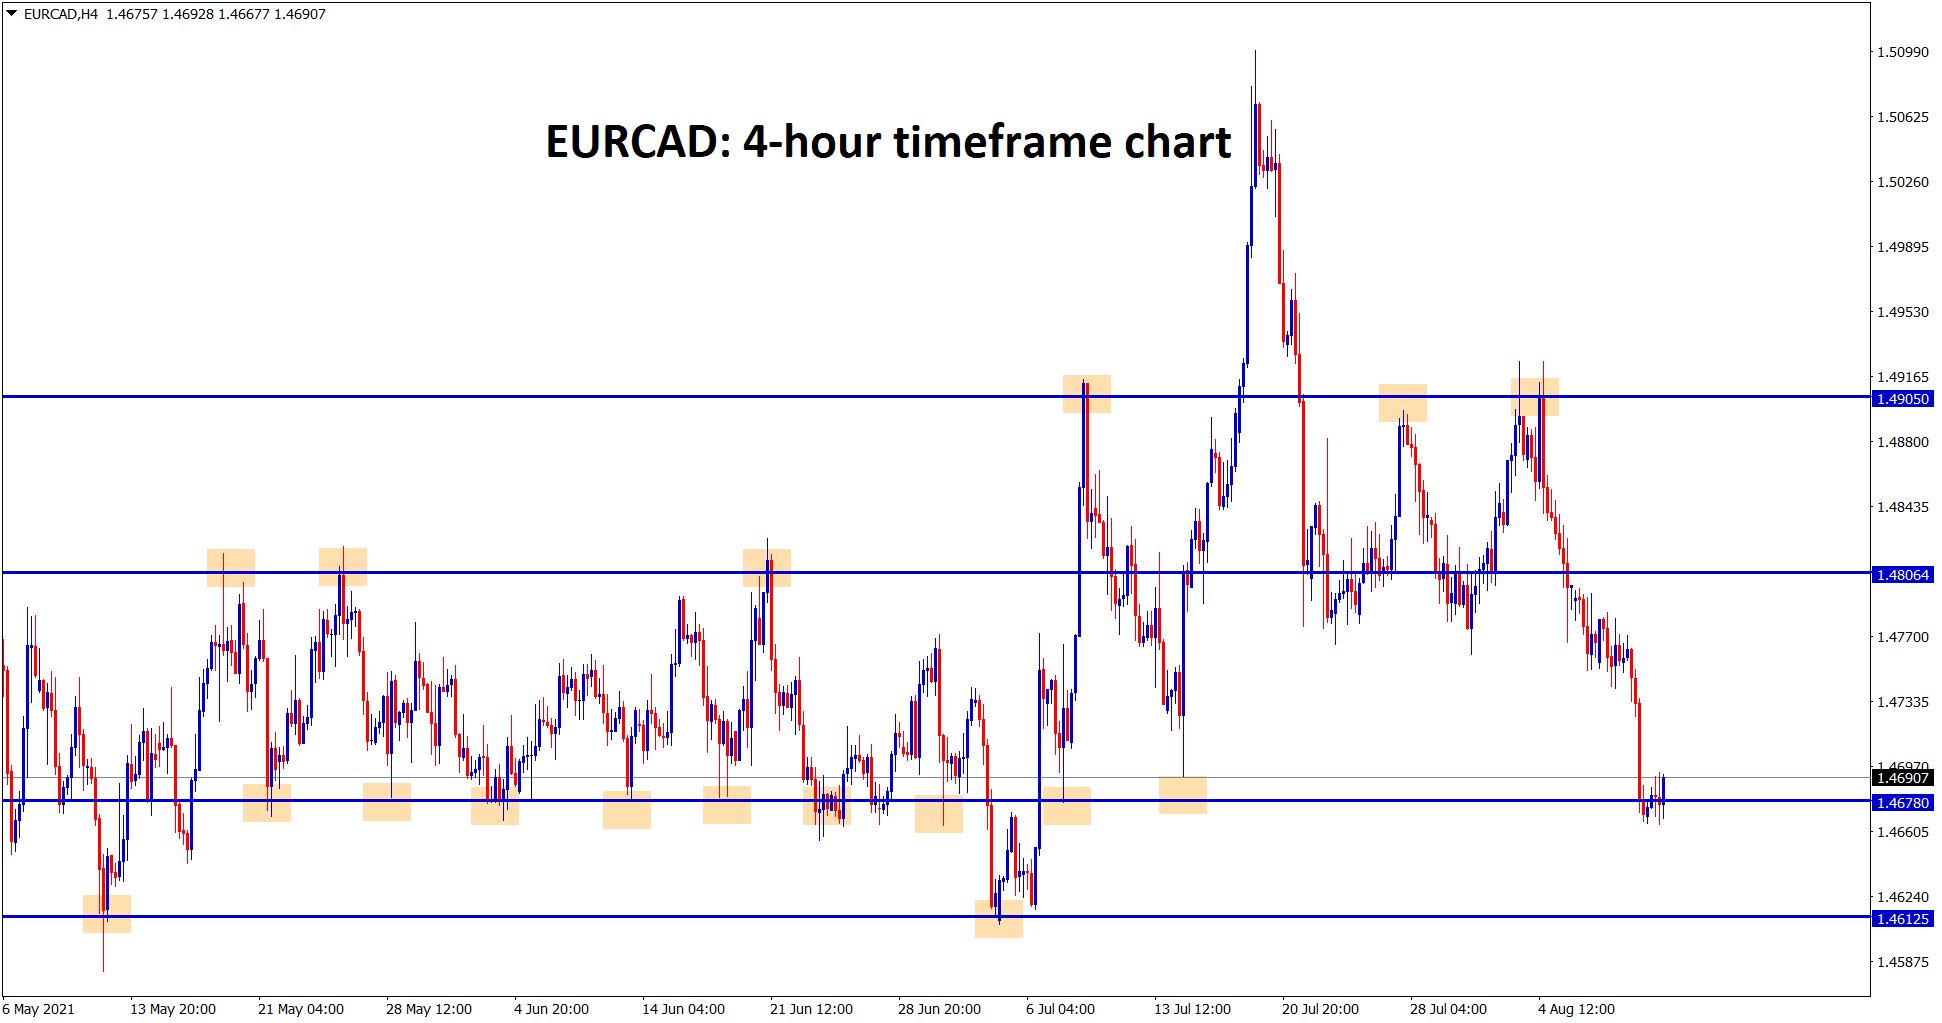 EURCAD standing now at the minor support zone if it falls it will fall to the major support 1.46